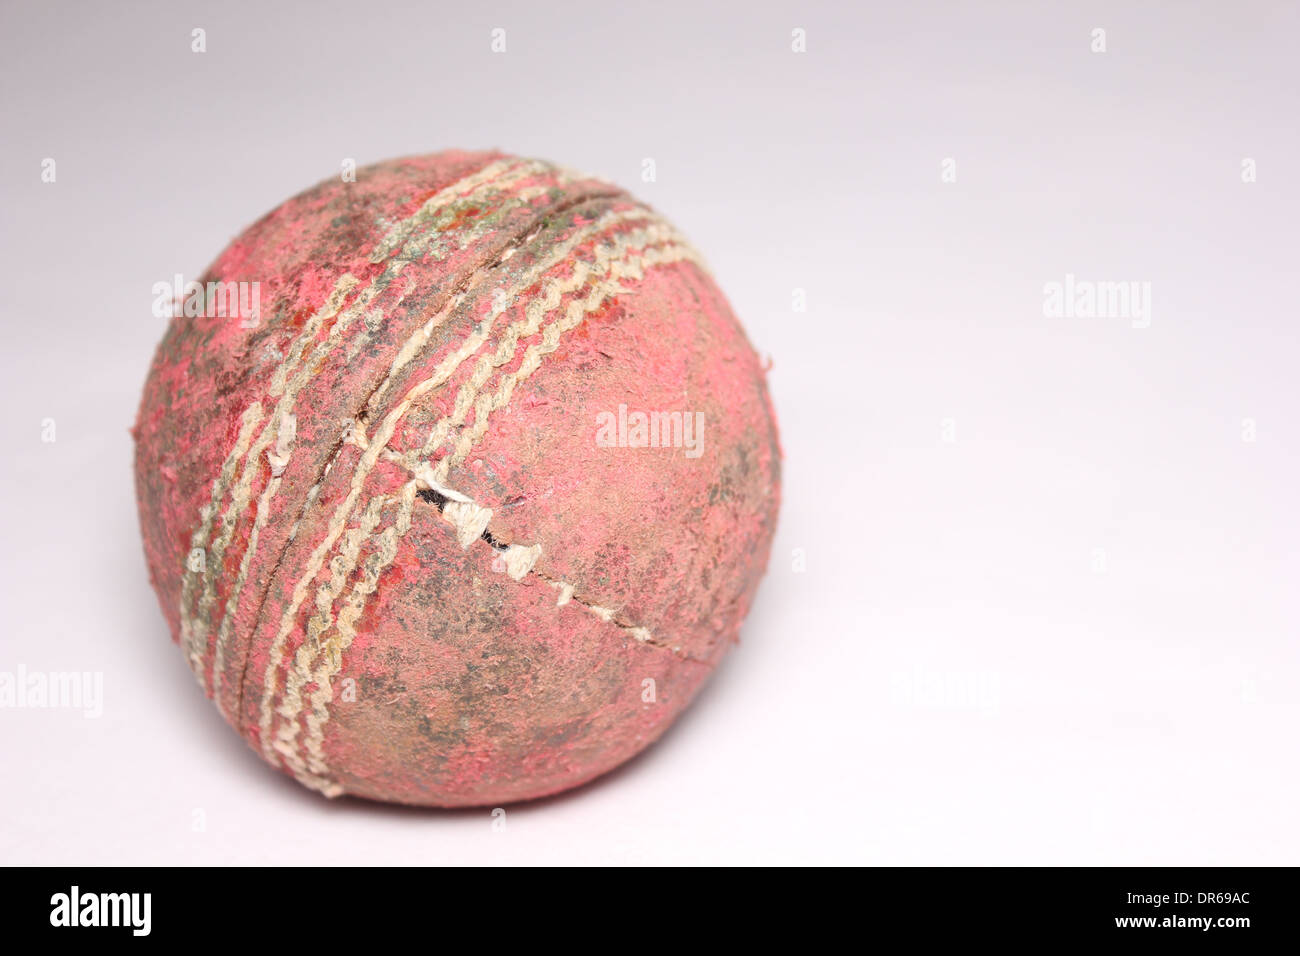 A worn out cricket ball Stock Photo